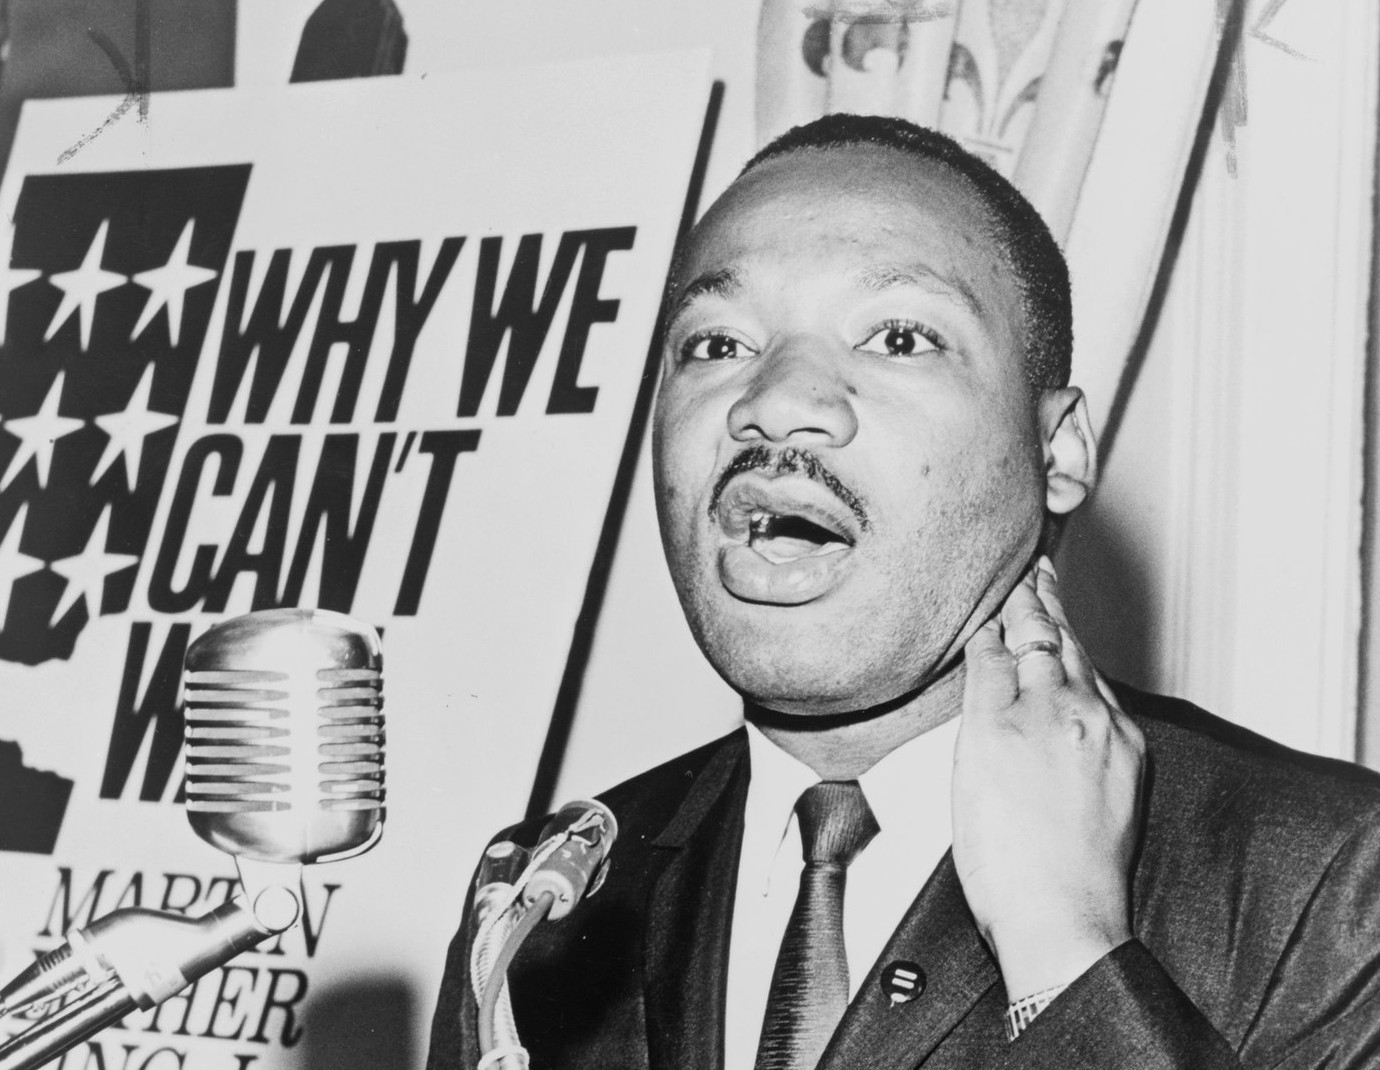 Martin Luther King, Jr., three-quarter length portrait, standing, facing front, at a press conference / World Telegram & Sun photo by Walter Albertin.